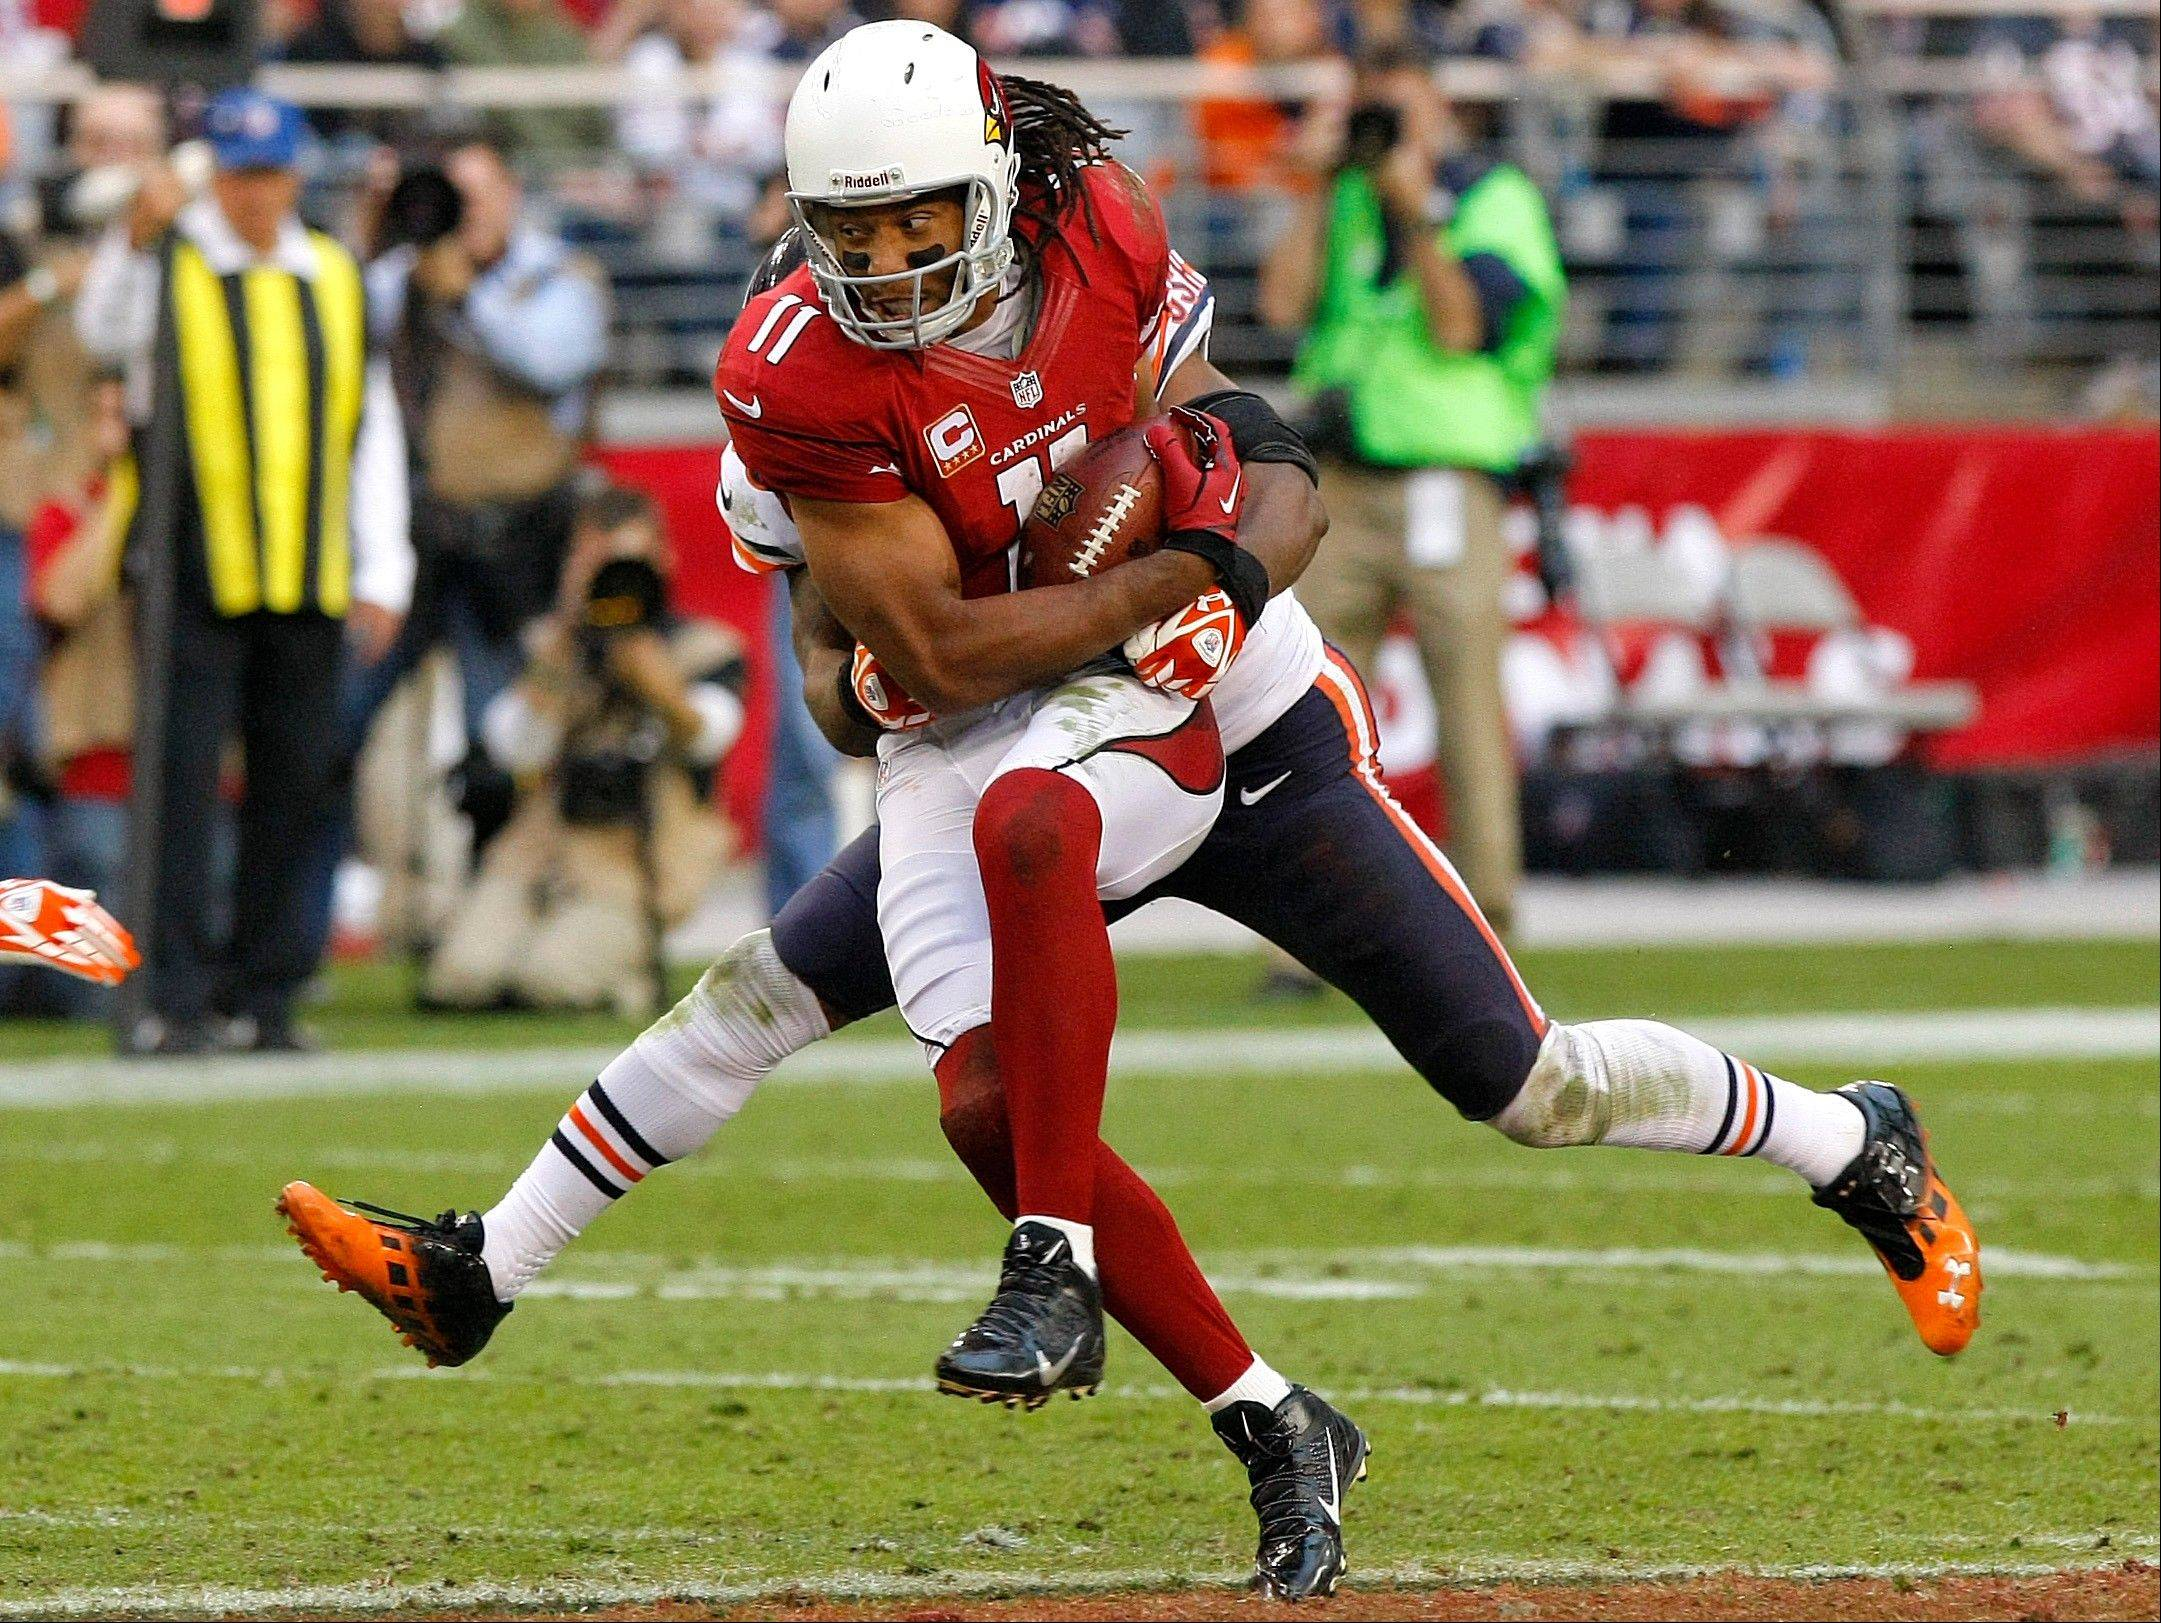 Arizona Cardinals wide receiver Larry Fitzgerald pulls in a pass against the Chicago Bears during the second half.